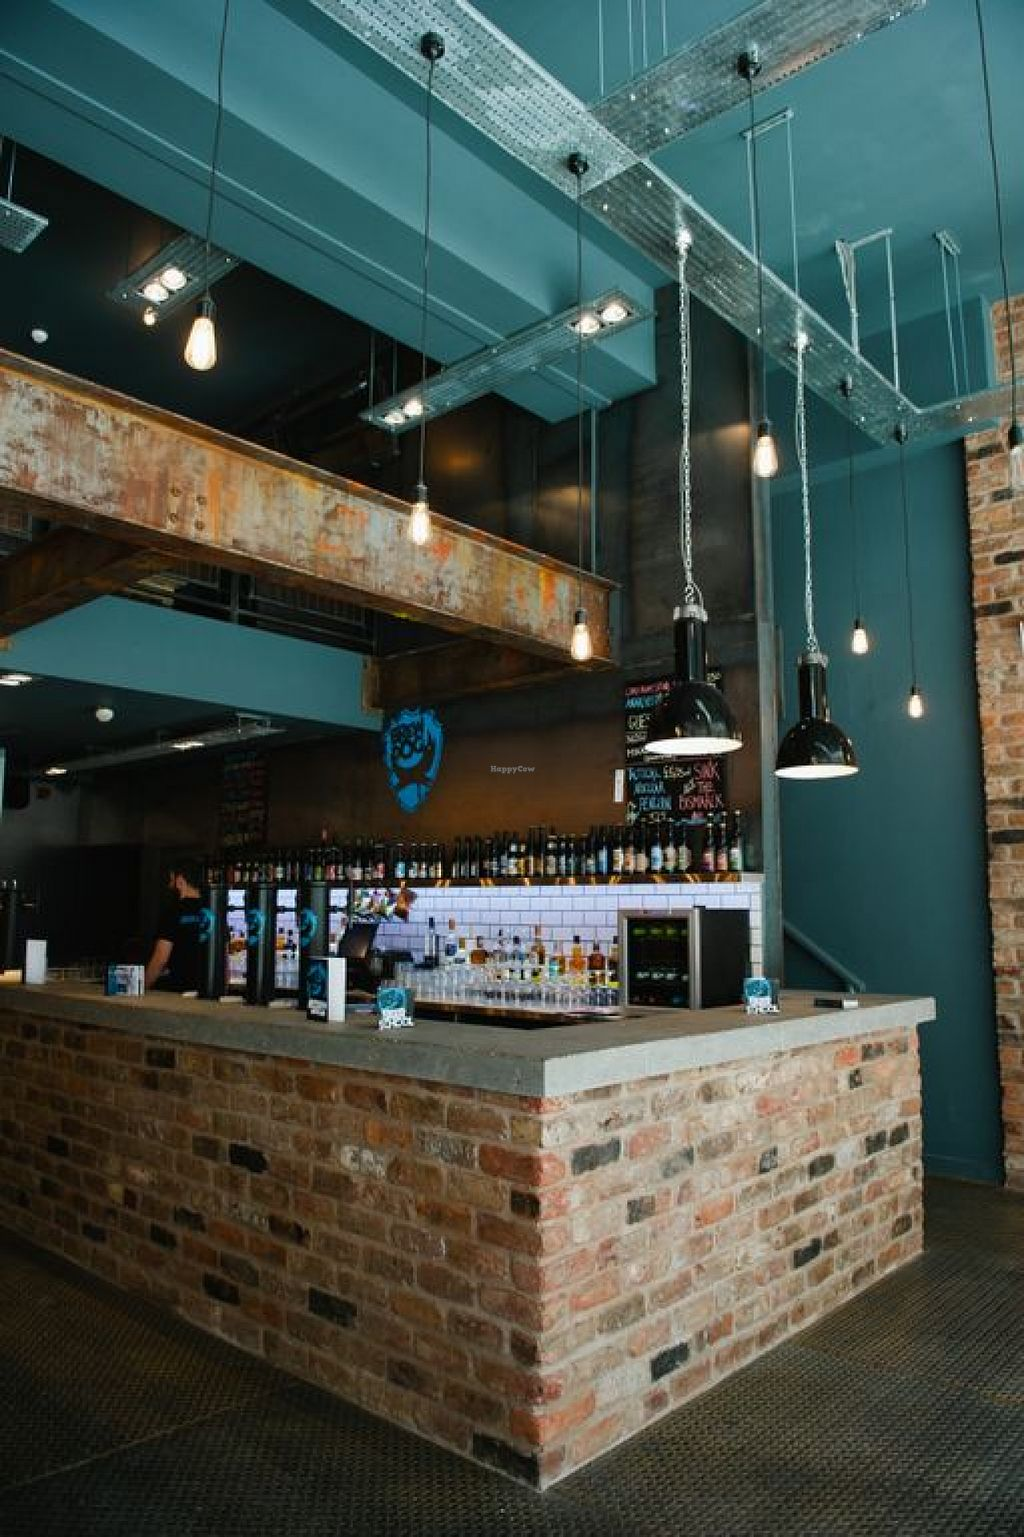 """Photo of BrewDog  by <a href=""""/members/profile/J-Veg"""">J-Veg</a> <br/>Interior <br/> July 29, 2015  - <a href='/contact/abuse/image/61207/111448'>Report</a>"""